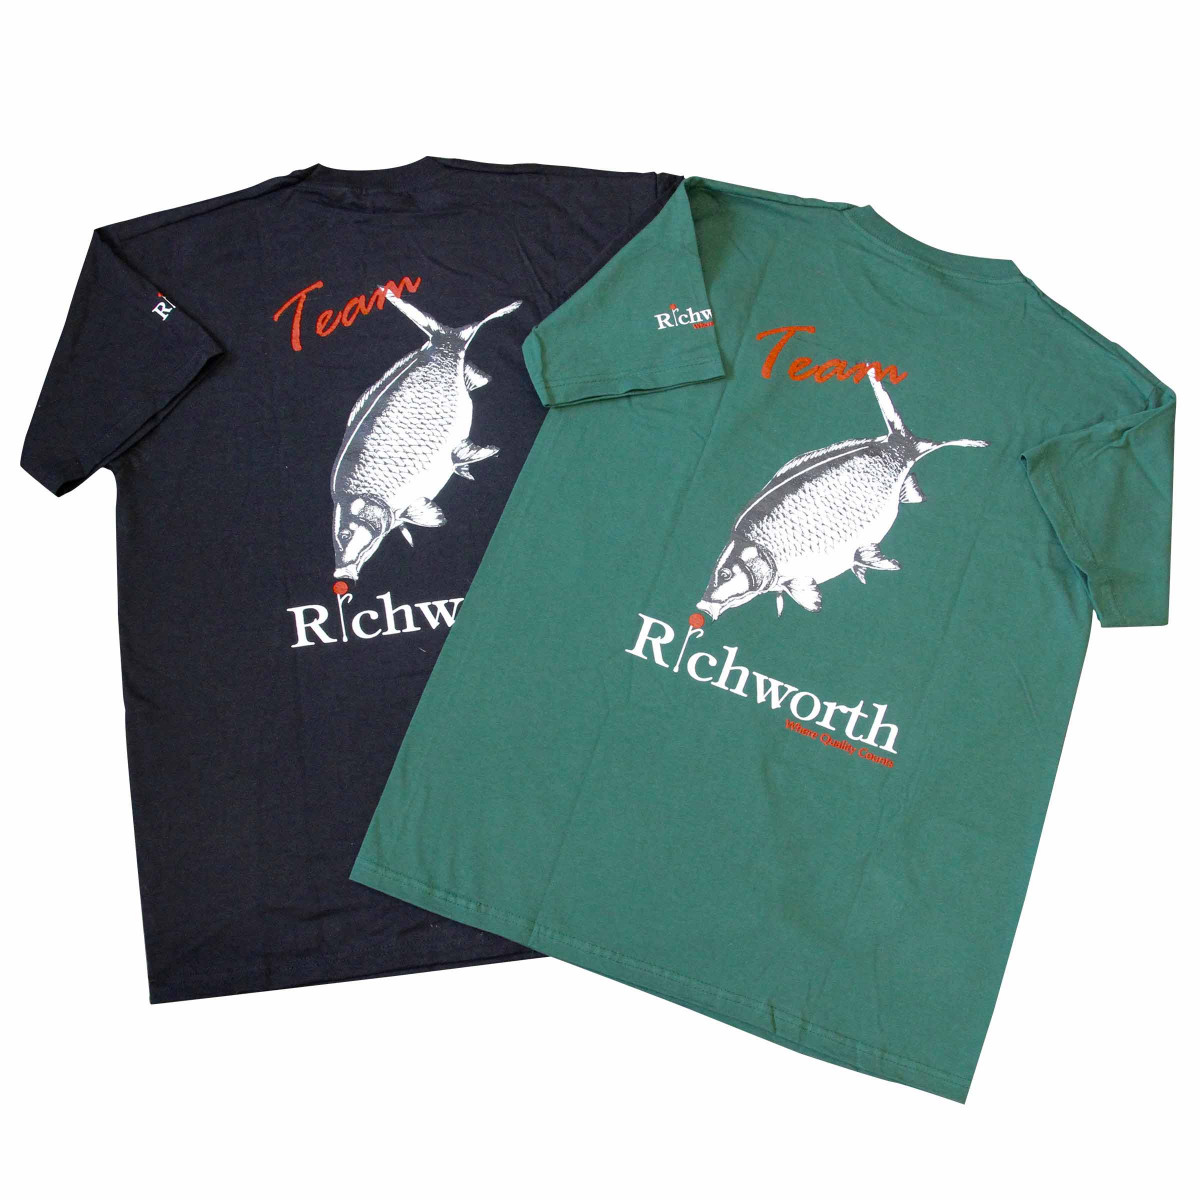 Richworth Tshirts Back